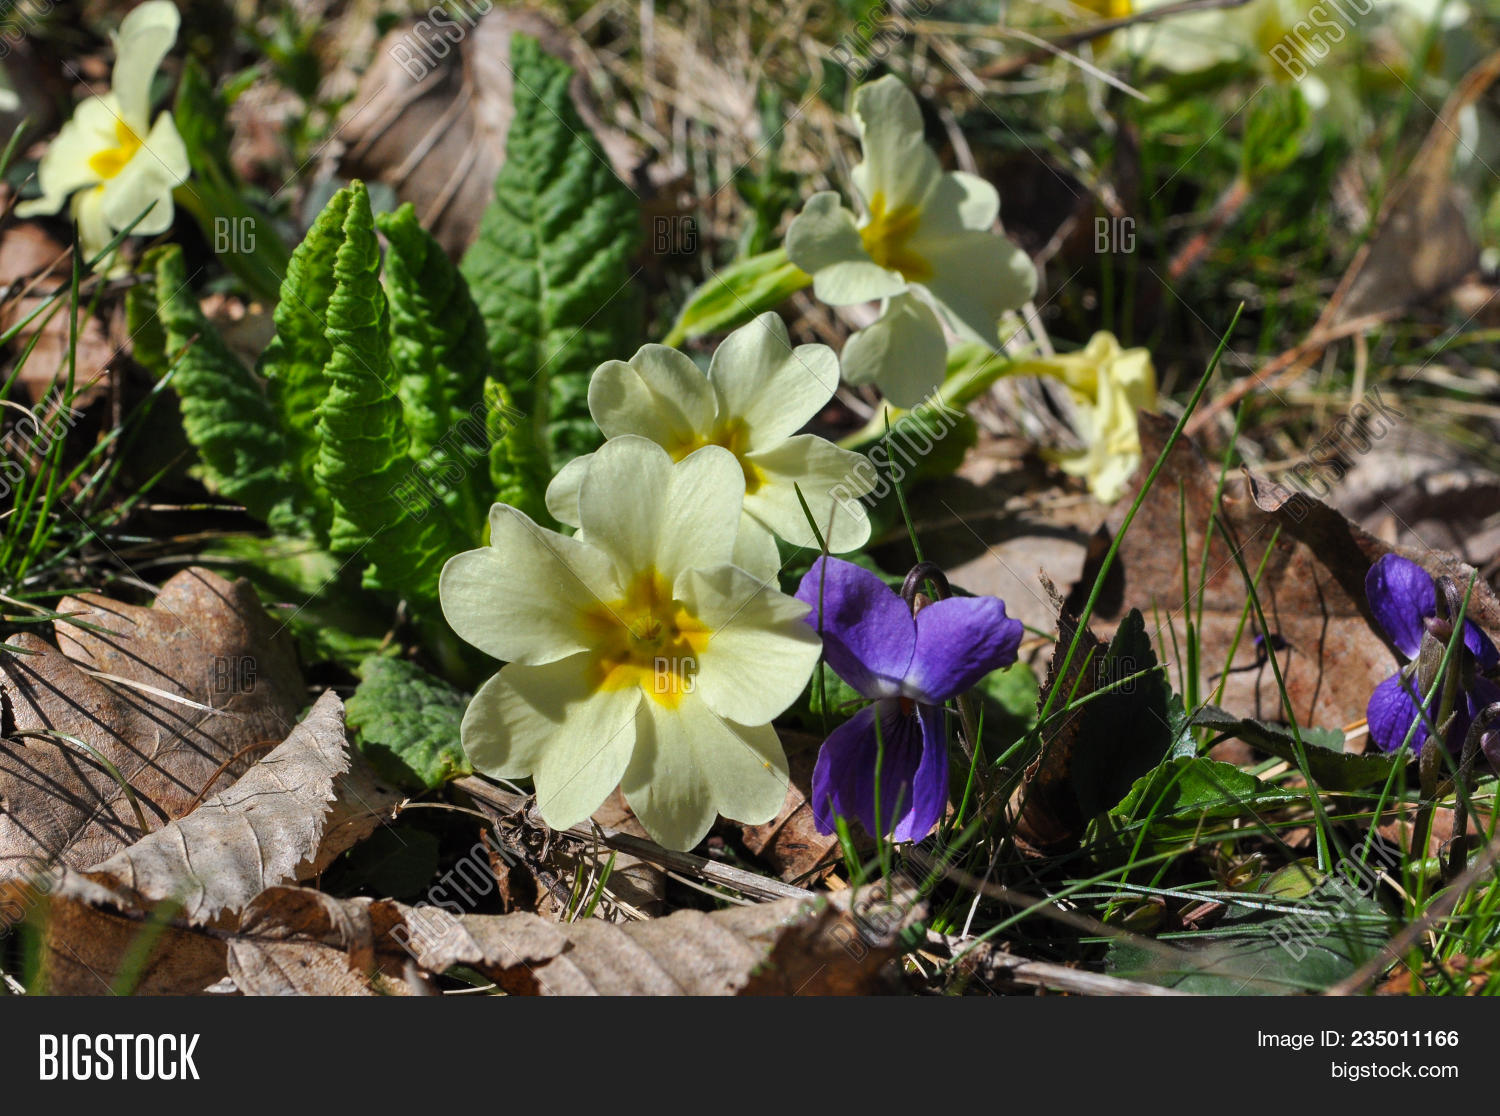 Early Spring Flowers Image Photo Free Trial Bigstock